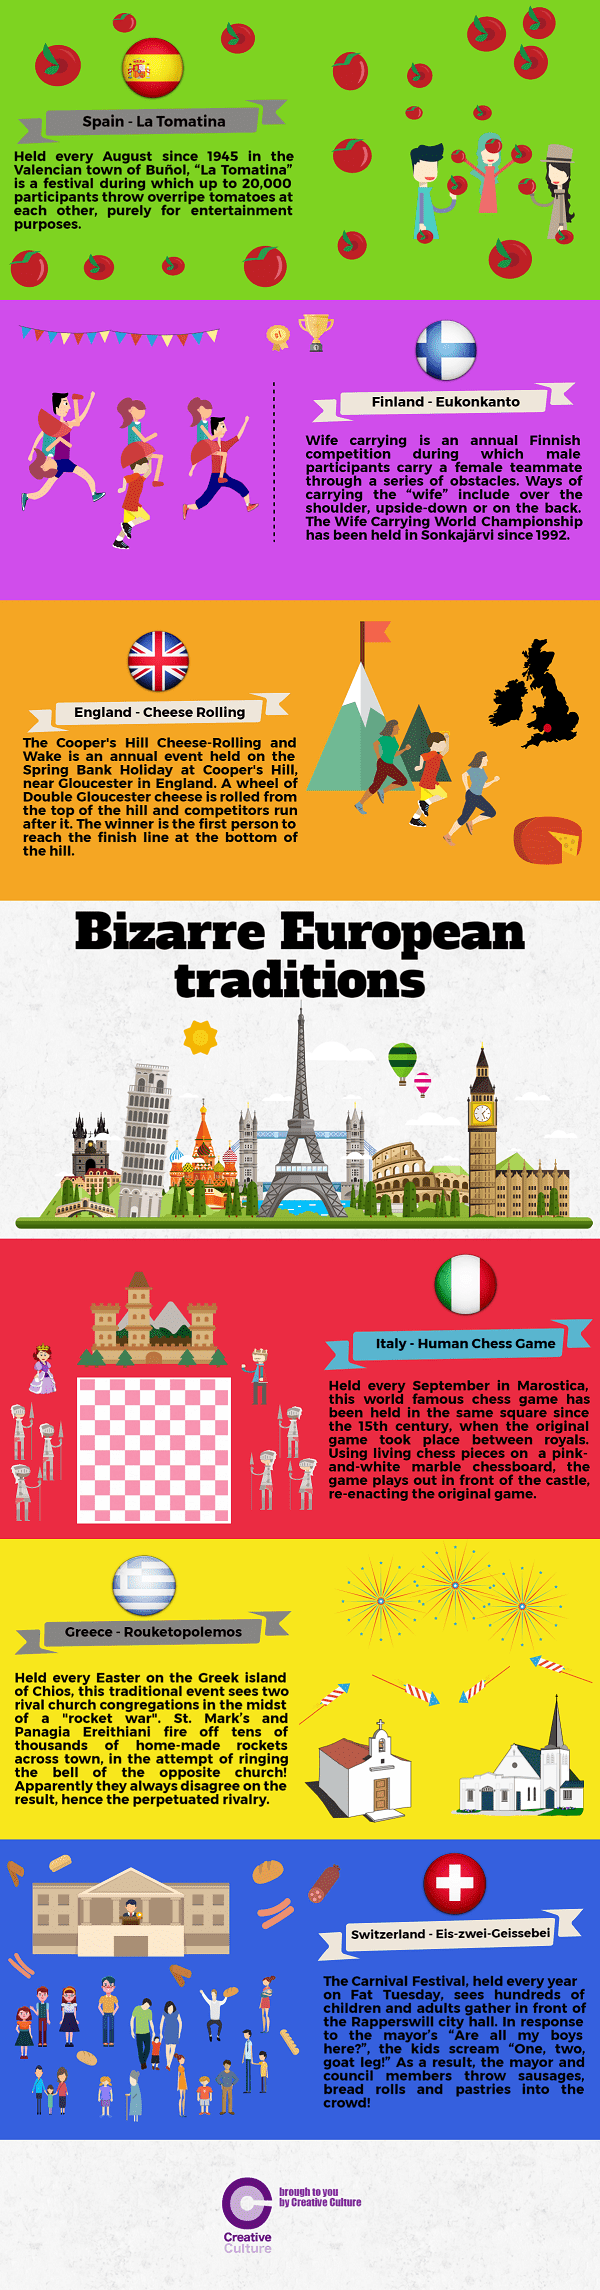 Bizarre European Traditions